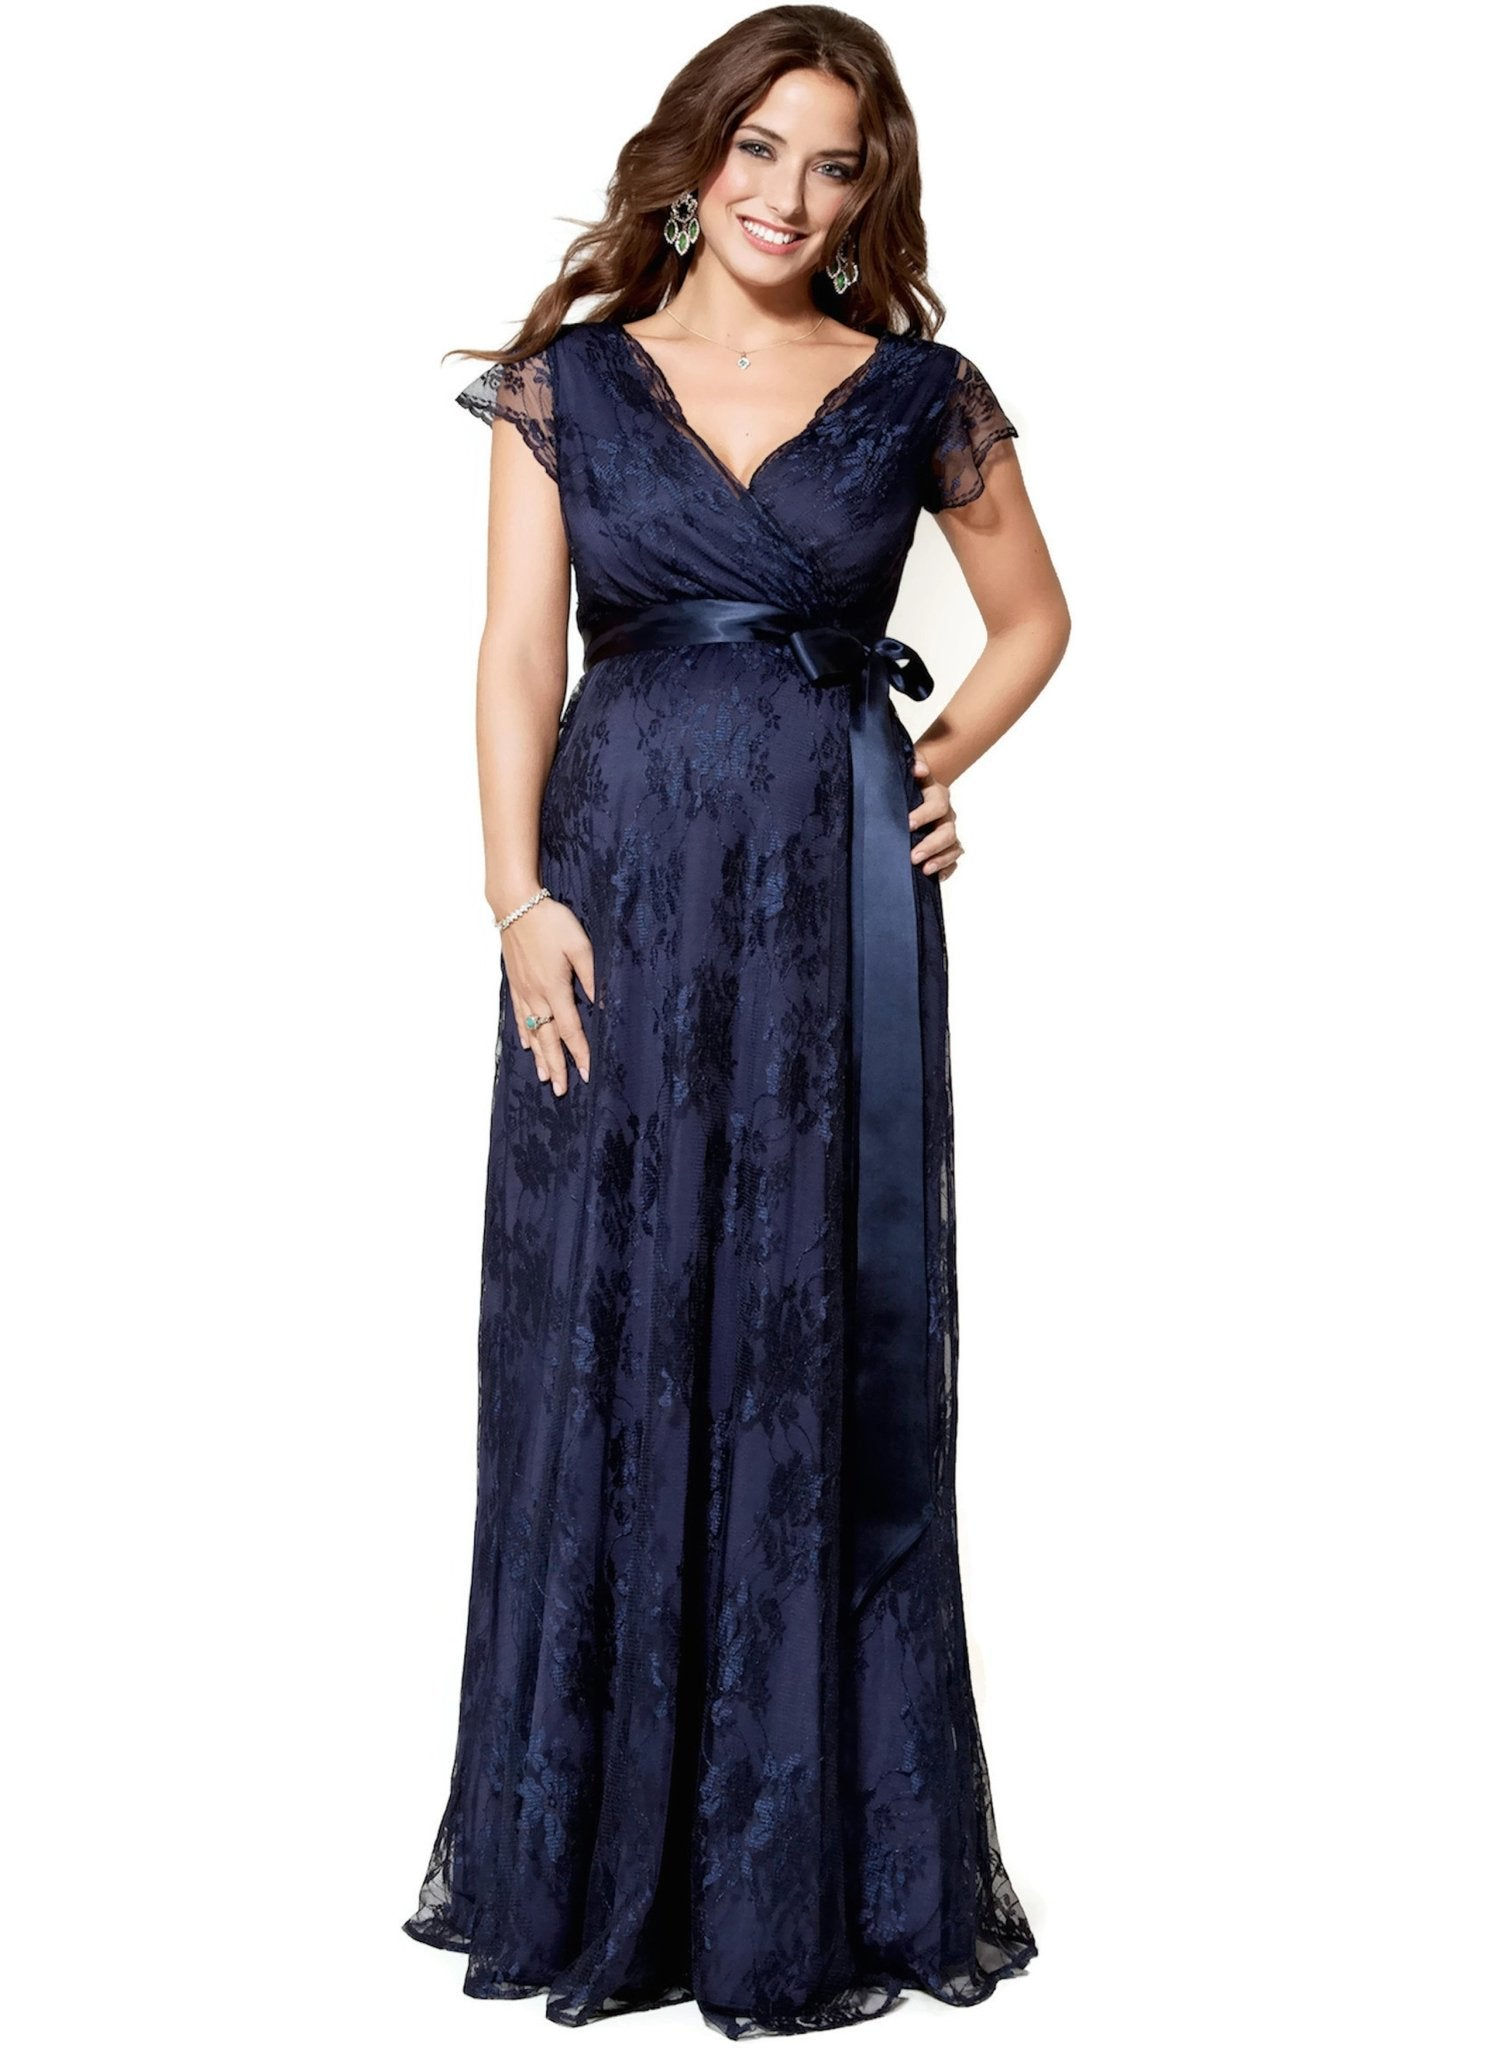 Eden Maternity Gown - Arabian Nights - Mums and Bumps